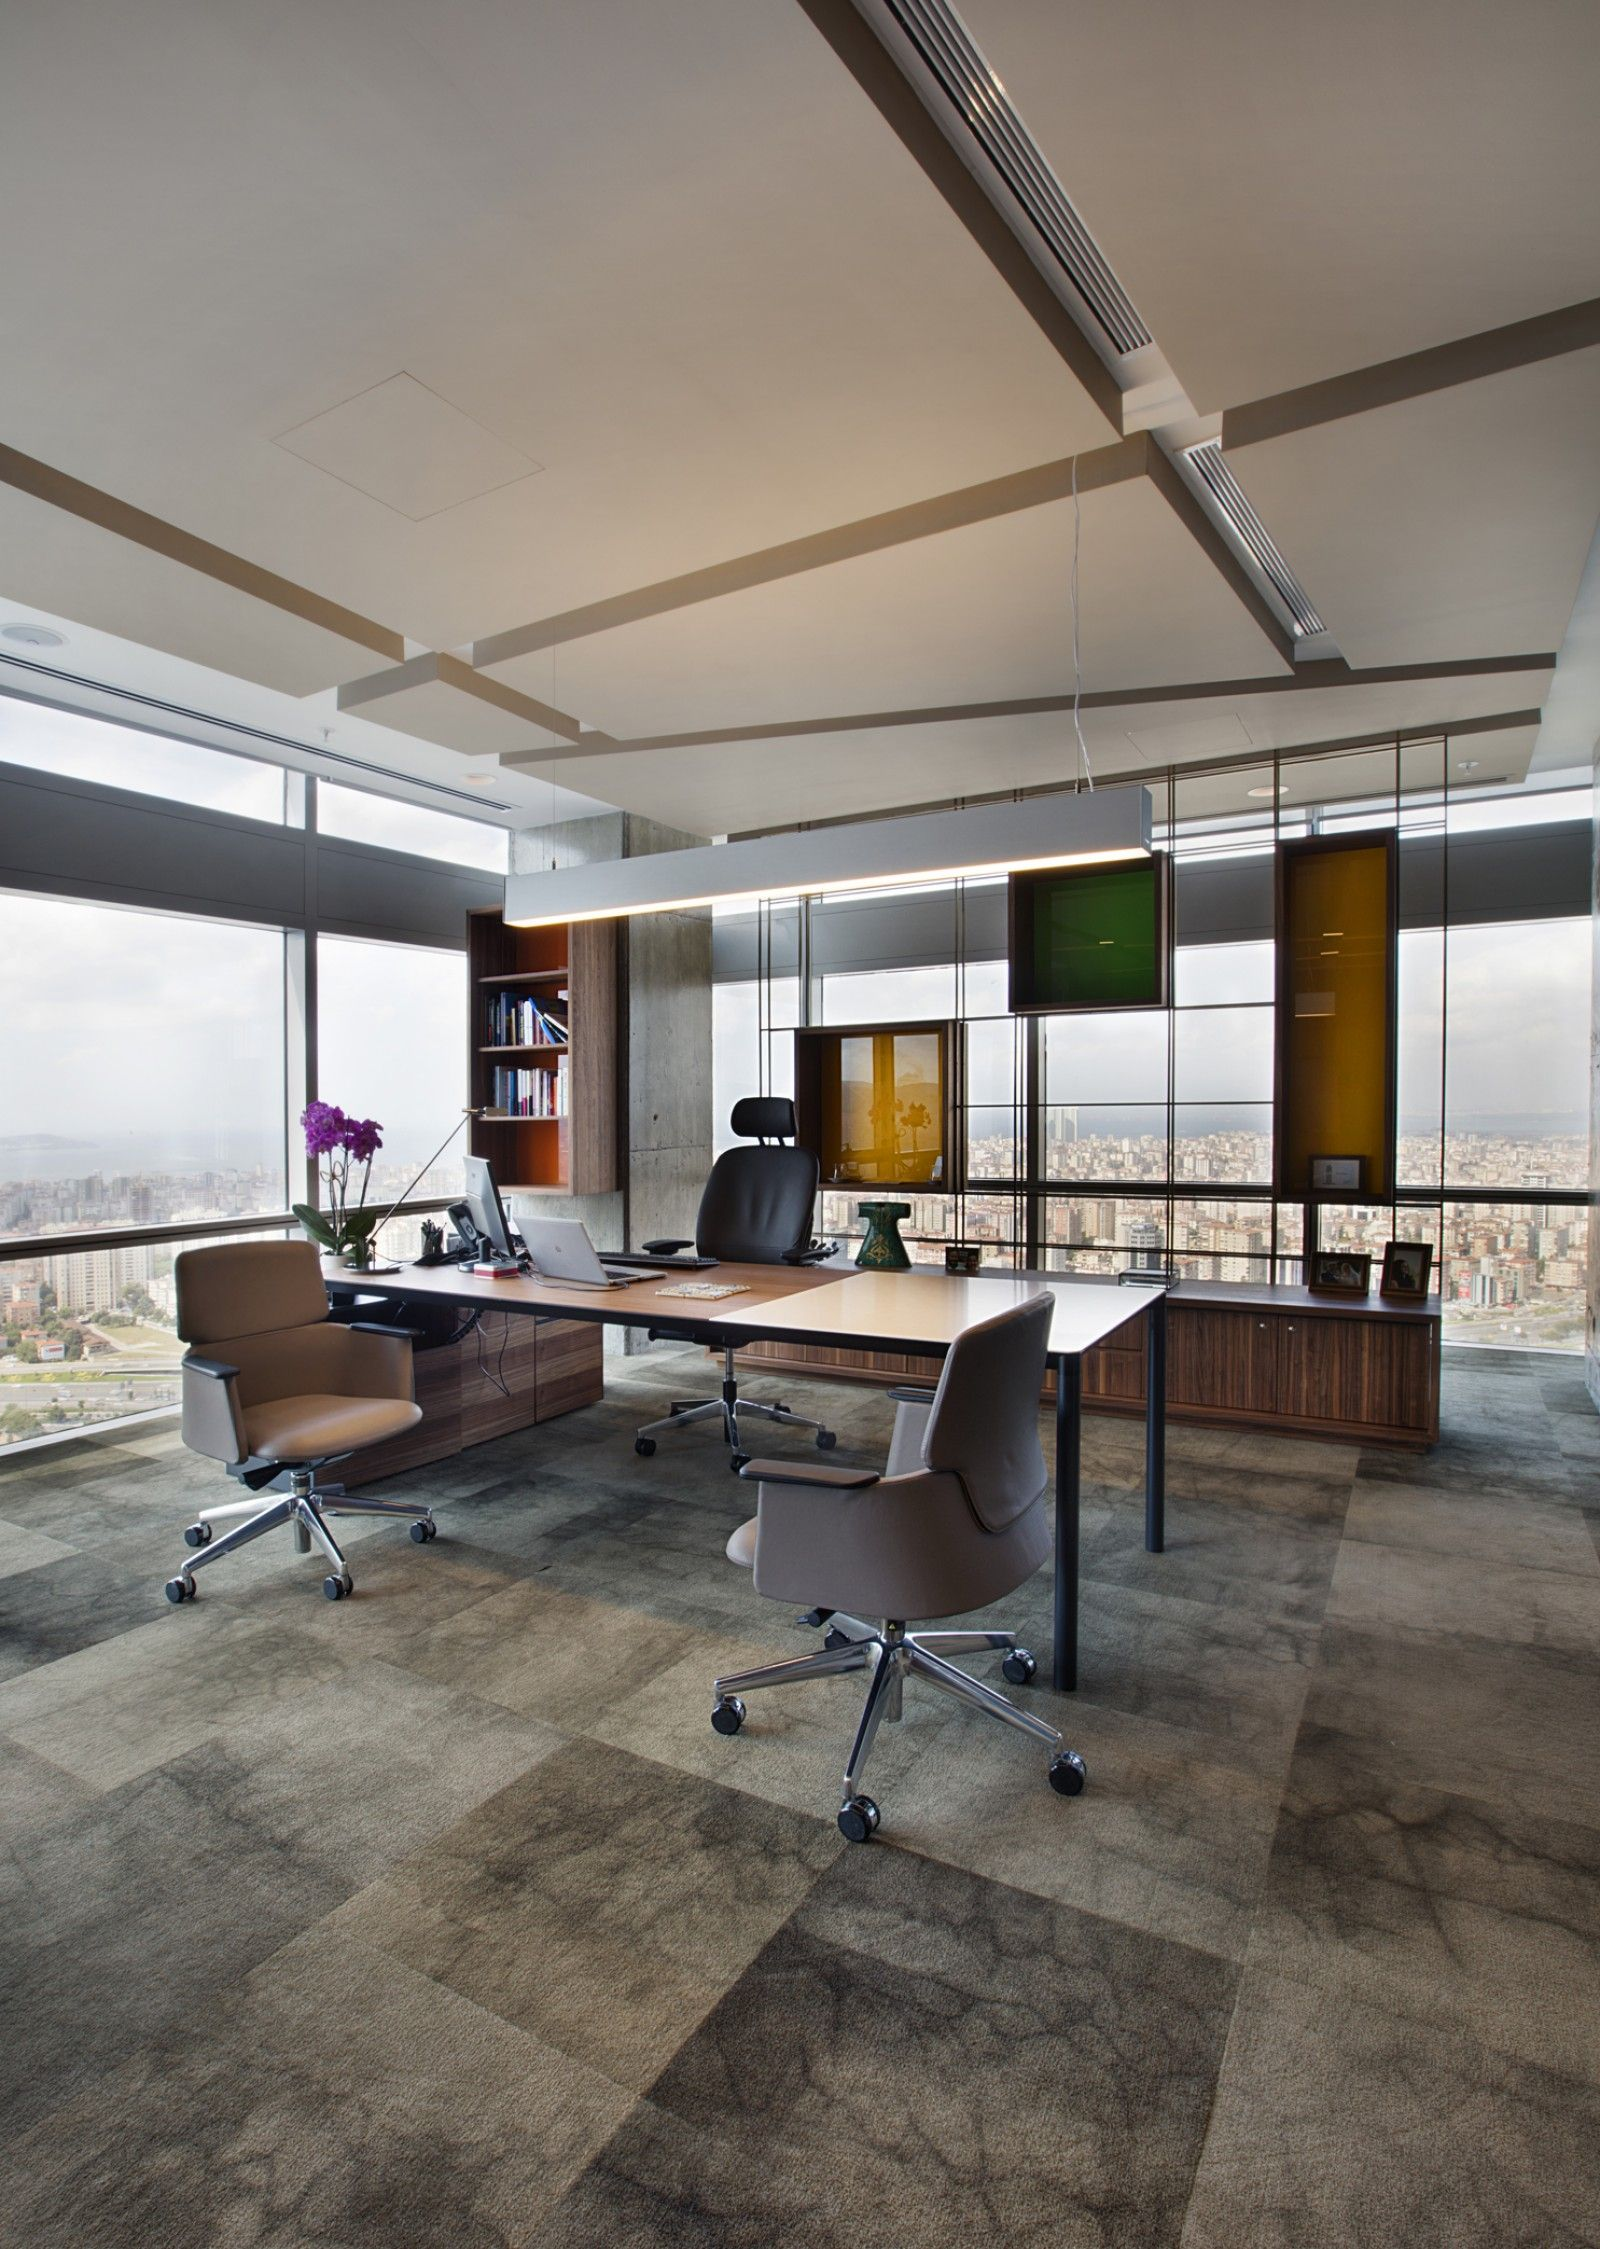 cool office ceiling plan design floor type solutions elevation home best lighting fixtures executive desk of overhead small building for track business beautiful